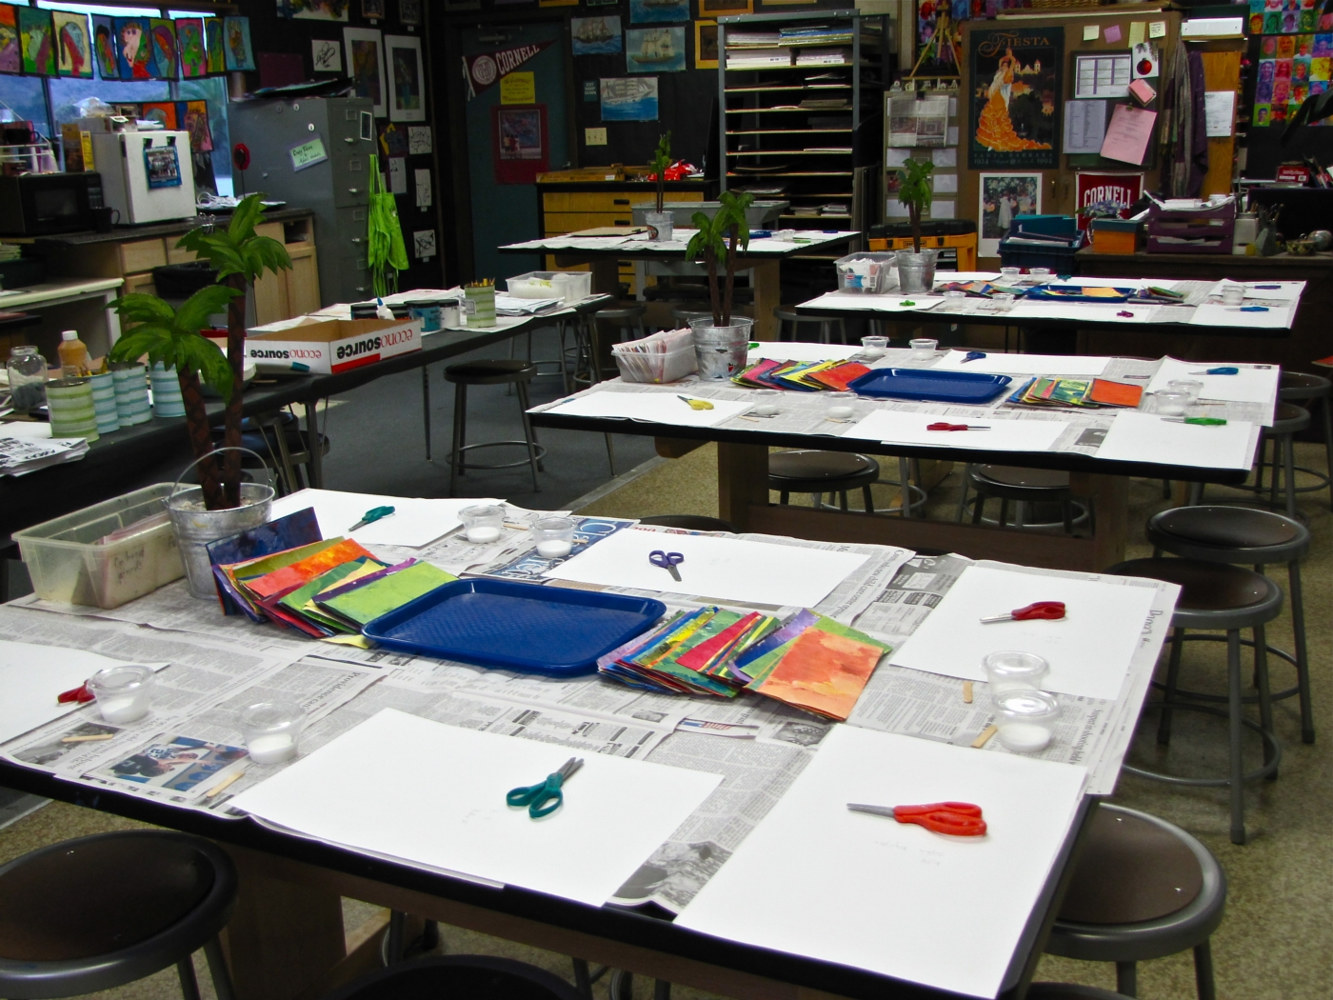 Set-up for Gr. K Eric Carle Collage Lesson by Linnie (Victoria) Aikens Lindsay